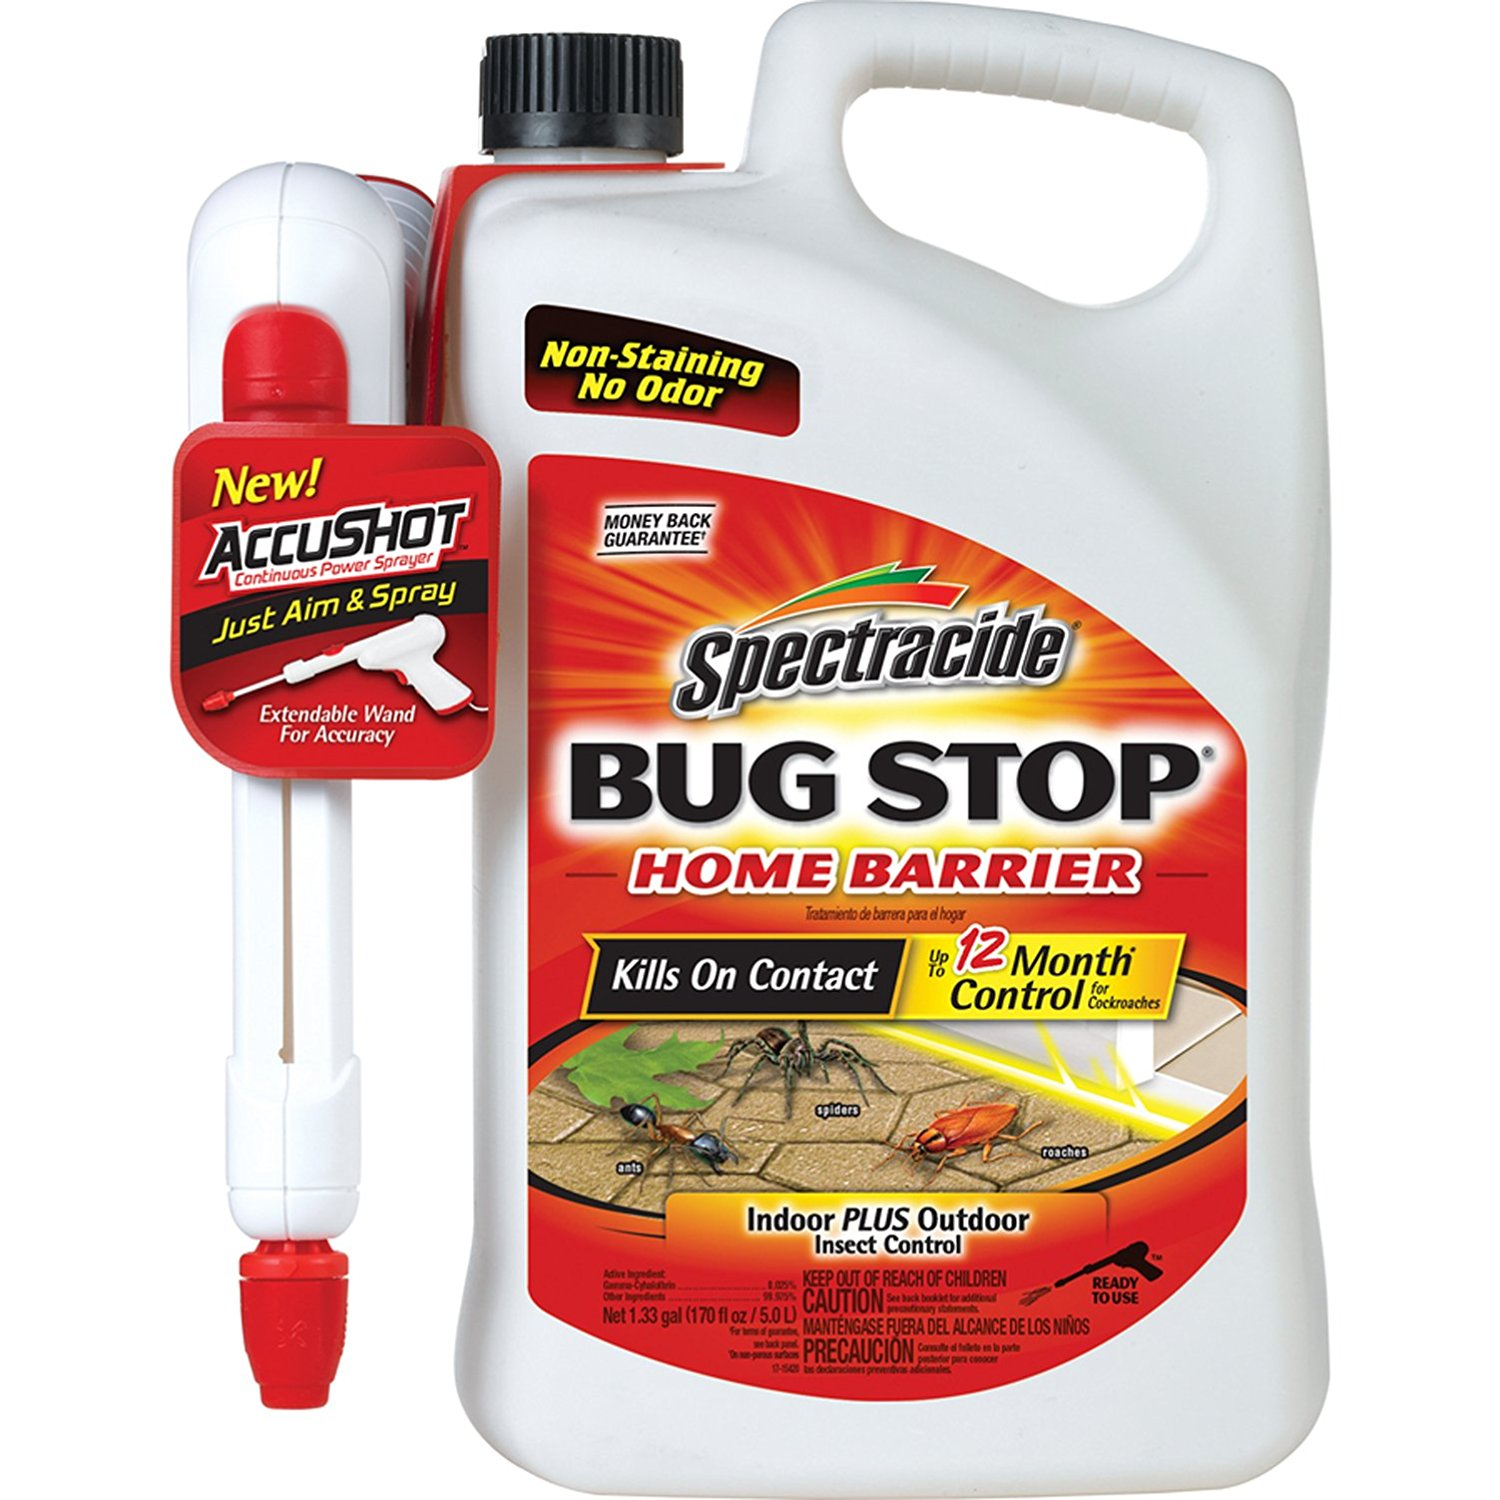 Spectracide Bug Stop Home Barrier with AccuShot, 1.33 Gallon